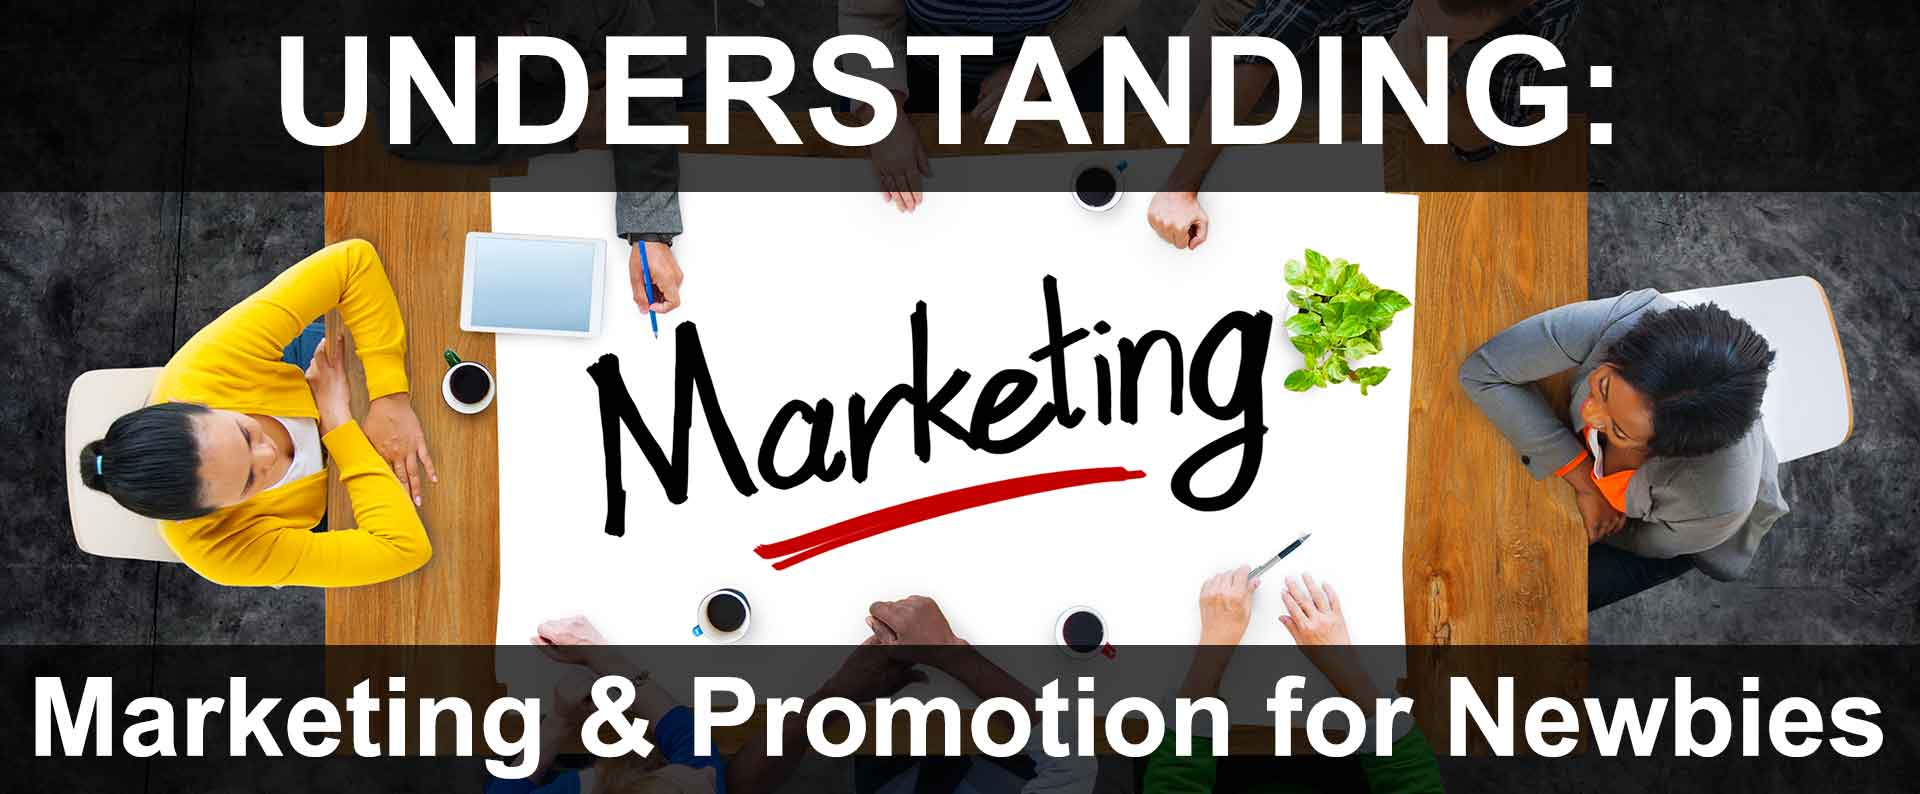 Marketing & Promotion for Newbies